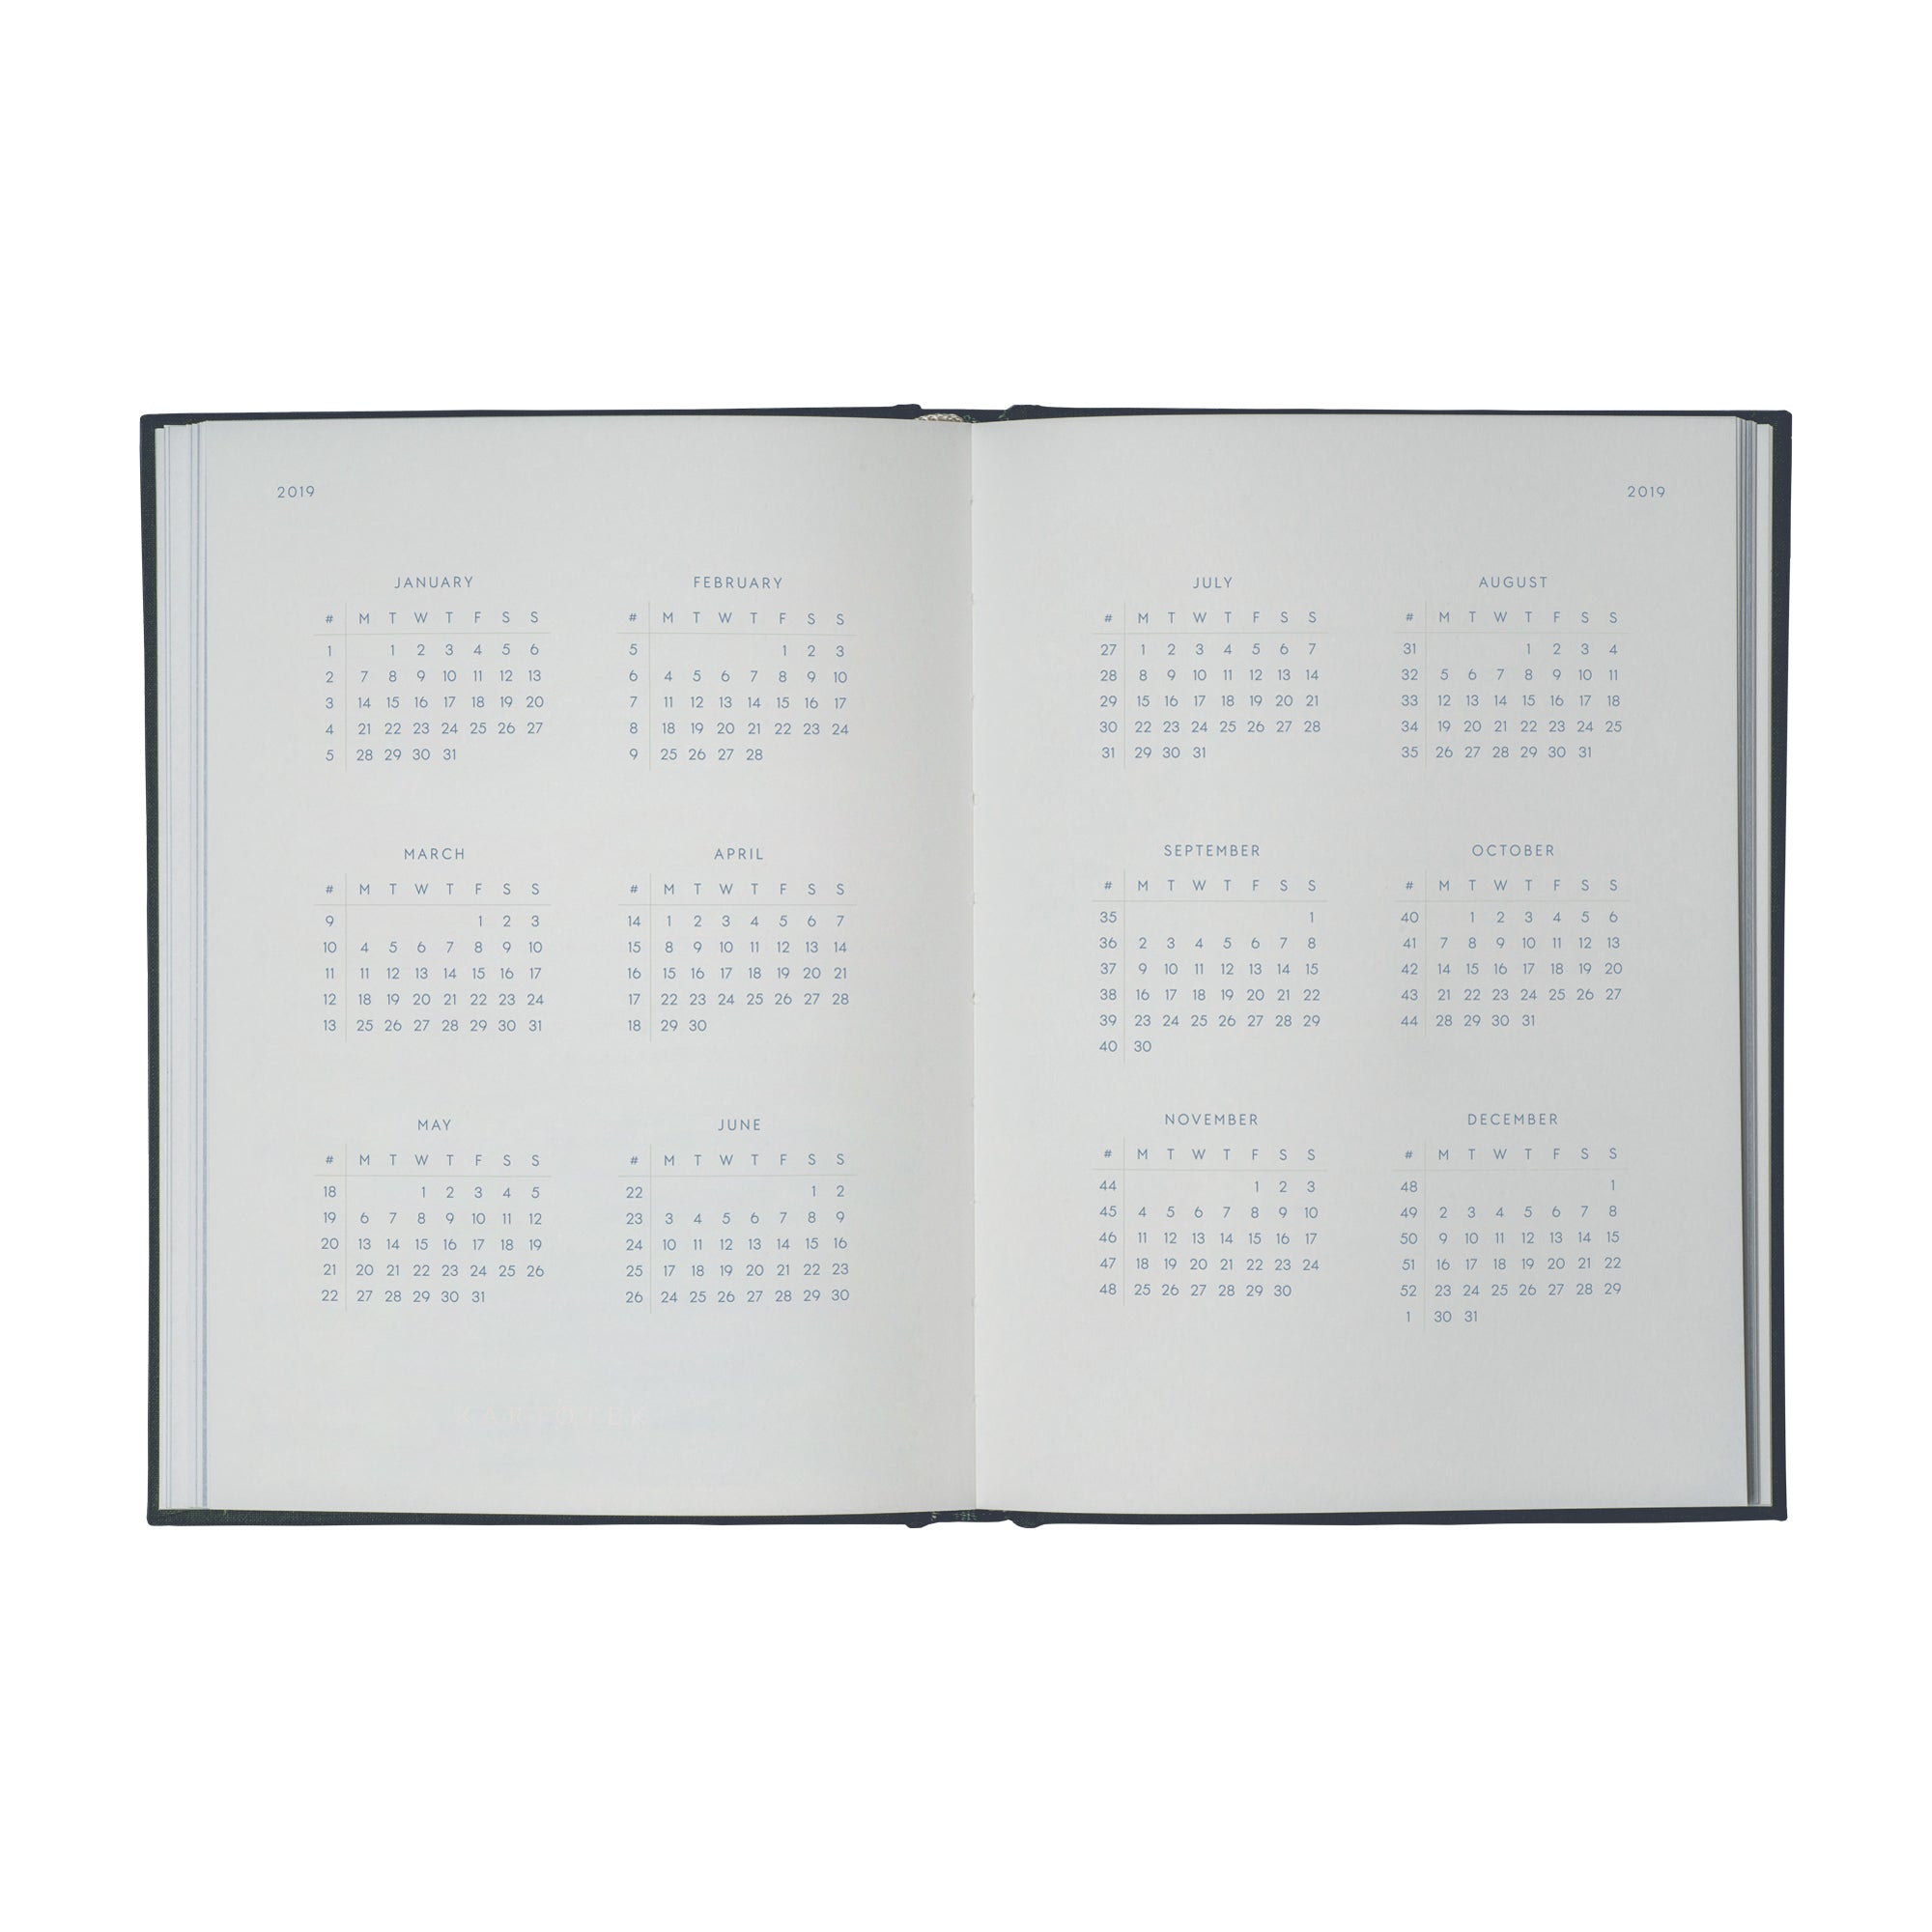 NOTEBOOK CALENDAR 2019 (50% OFF)